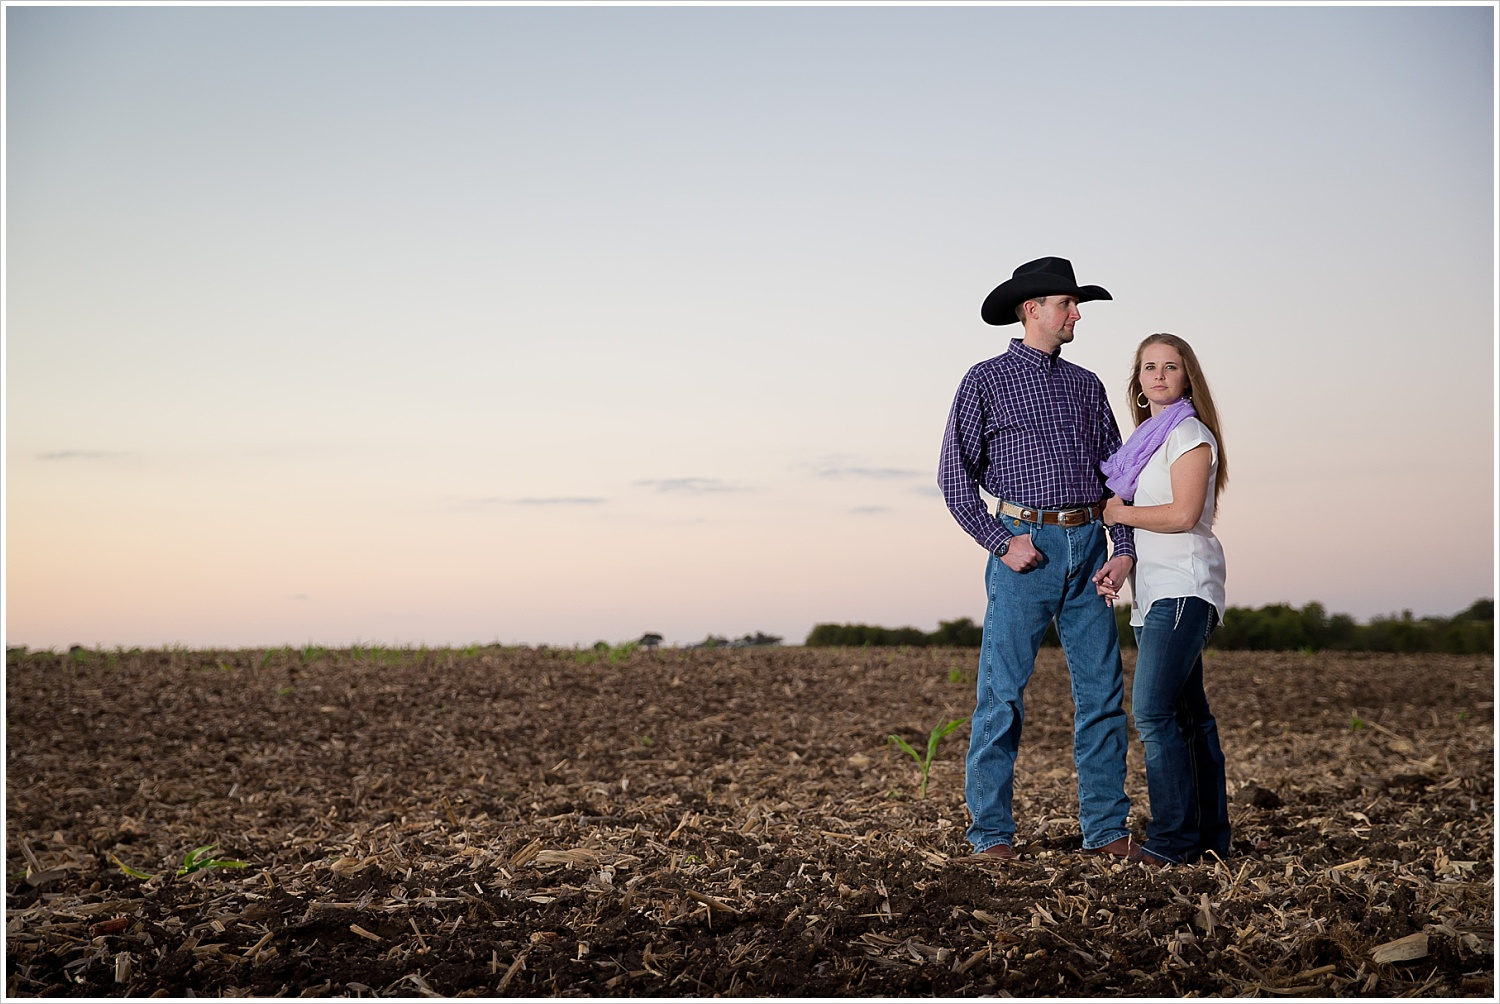 a couple posed in an open field with a sunset behind them | West, Texas | Jason & Melaina Photography